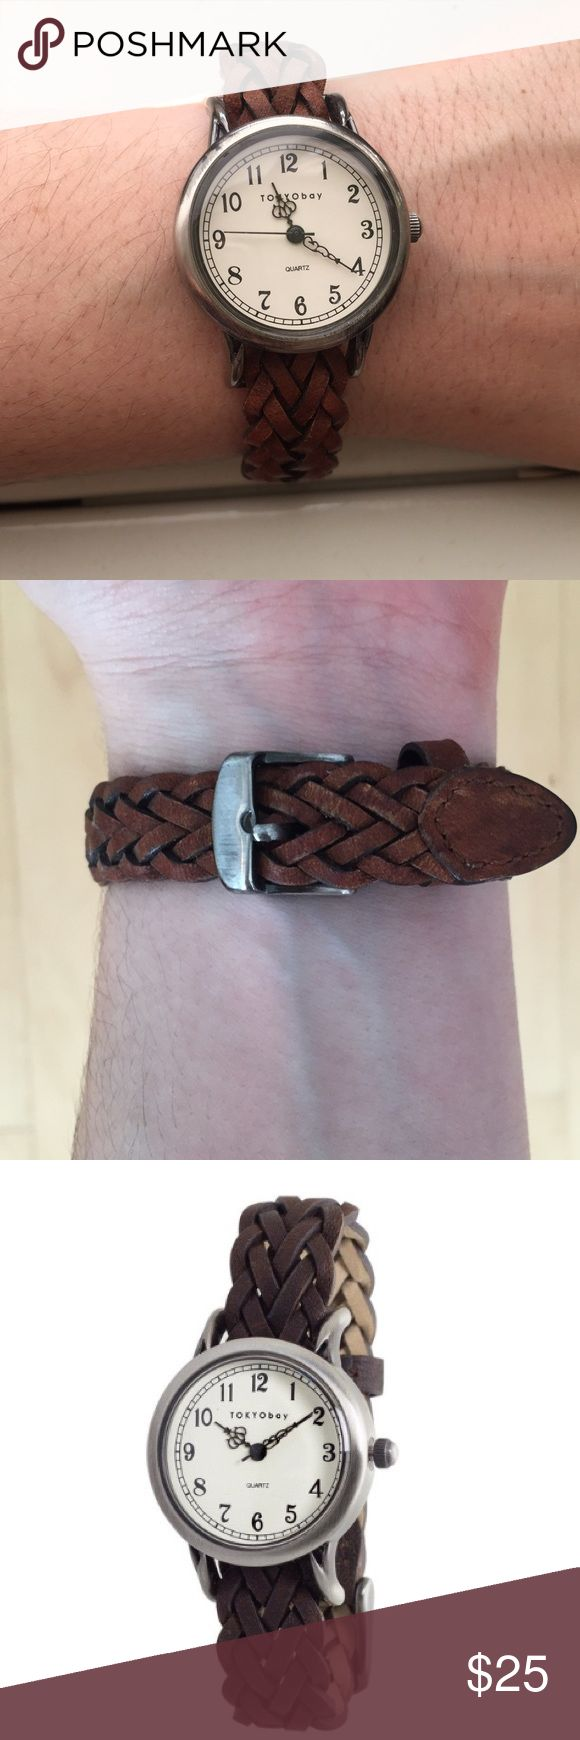 Tokyo Bay Brown Braid Watch Brown braided leather watch from Tokyo Bay. The battery is dead but the watch is I'm great, unscratched condition. The leather is slightly faded near the clasp; see photos. Tokyo Bay Accessories Watches